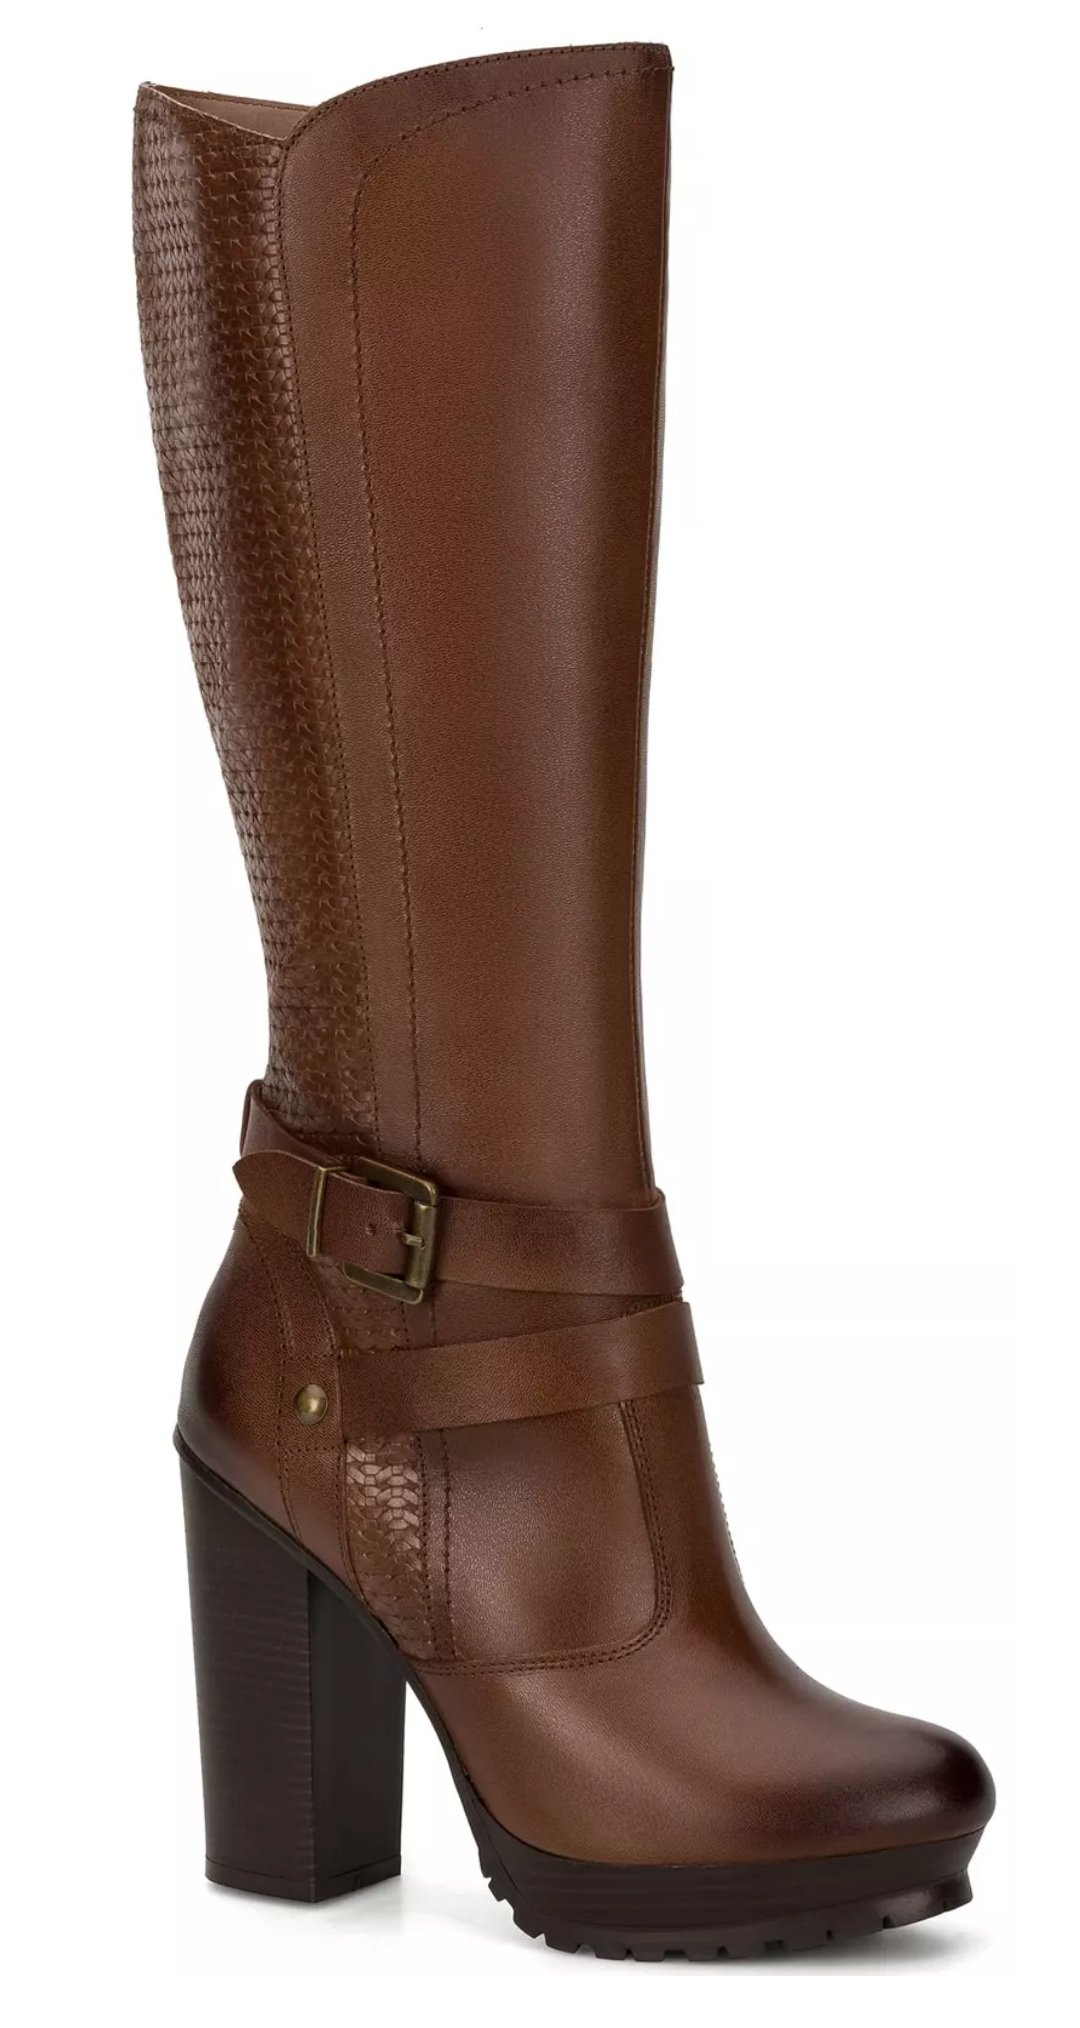 Andrea Shoes Women's Brown Leather Smooth & Engraved Texture Metallic Buckle Platform High Boot (7)